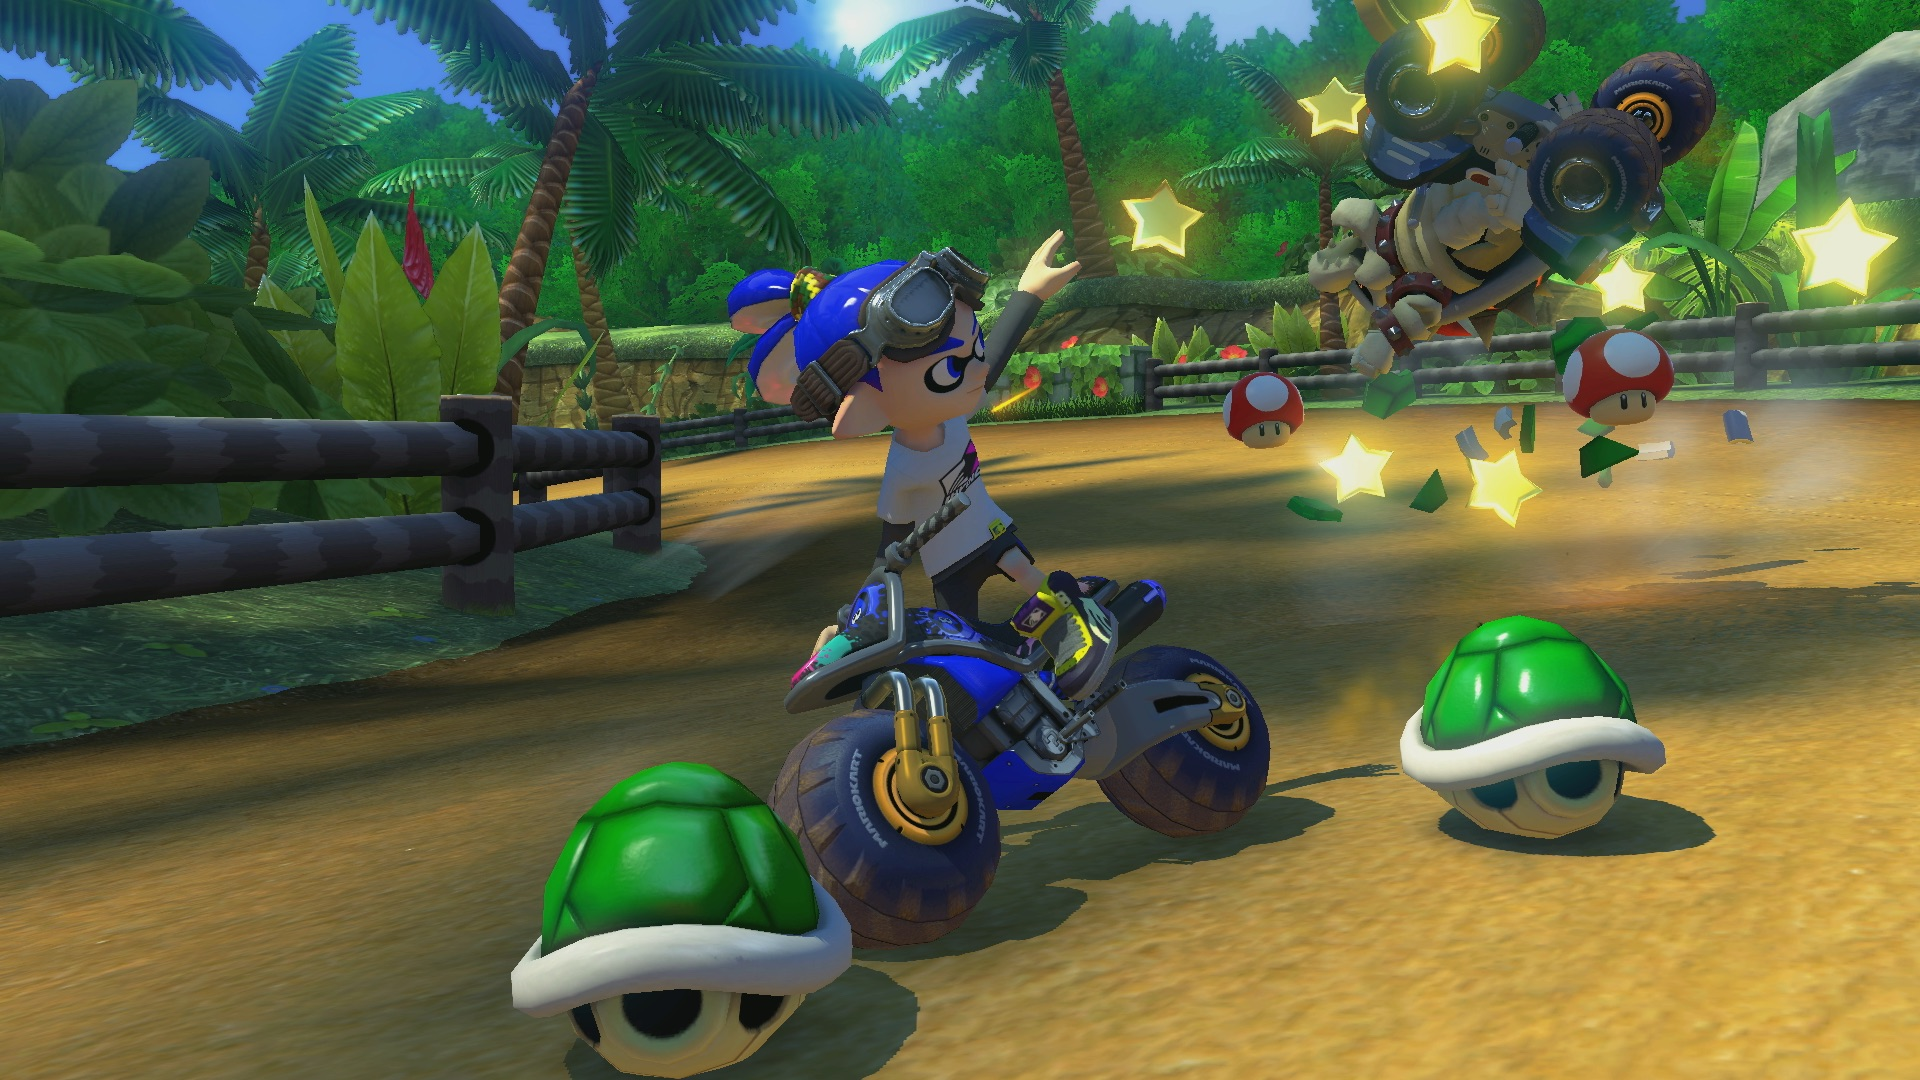 Image result for Mario Kart 8 Deluxe screenshot